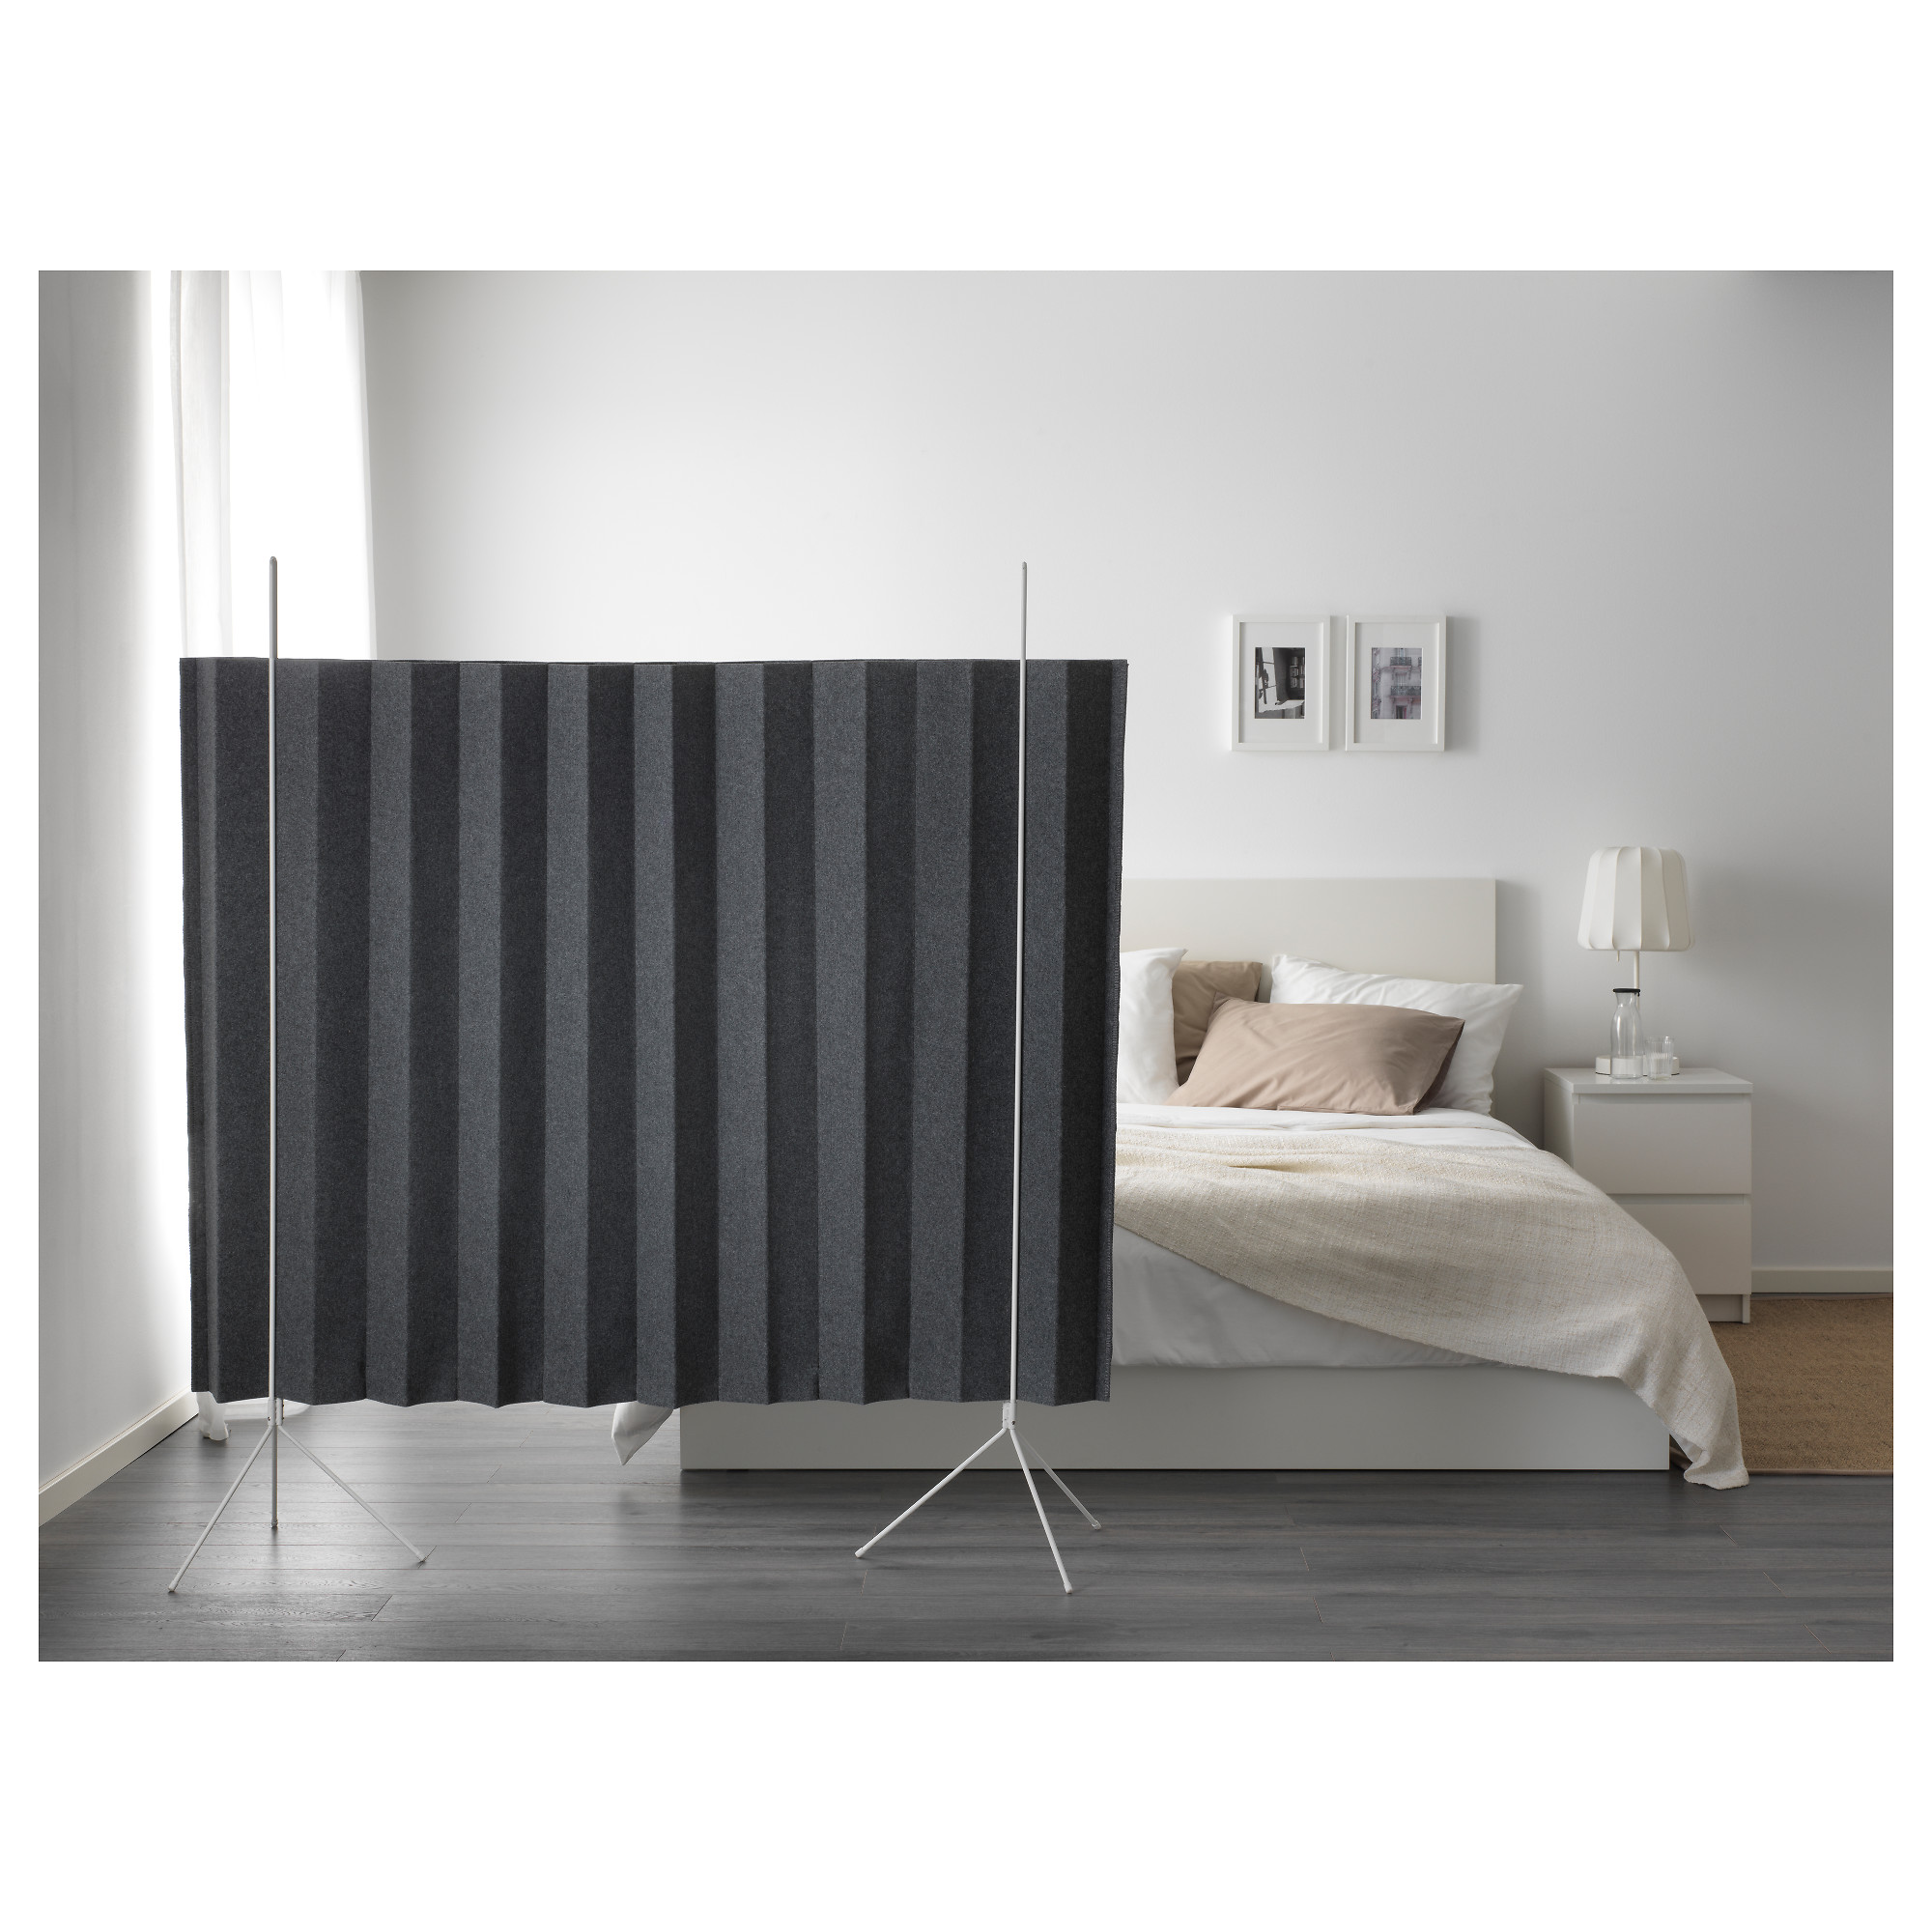 IKEA PS 2017 Room divider - IKEA